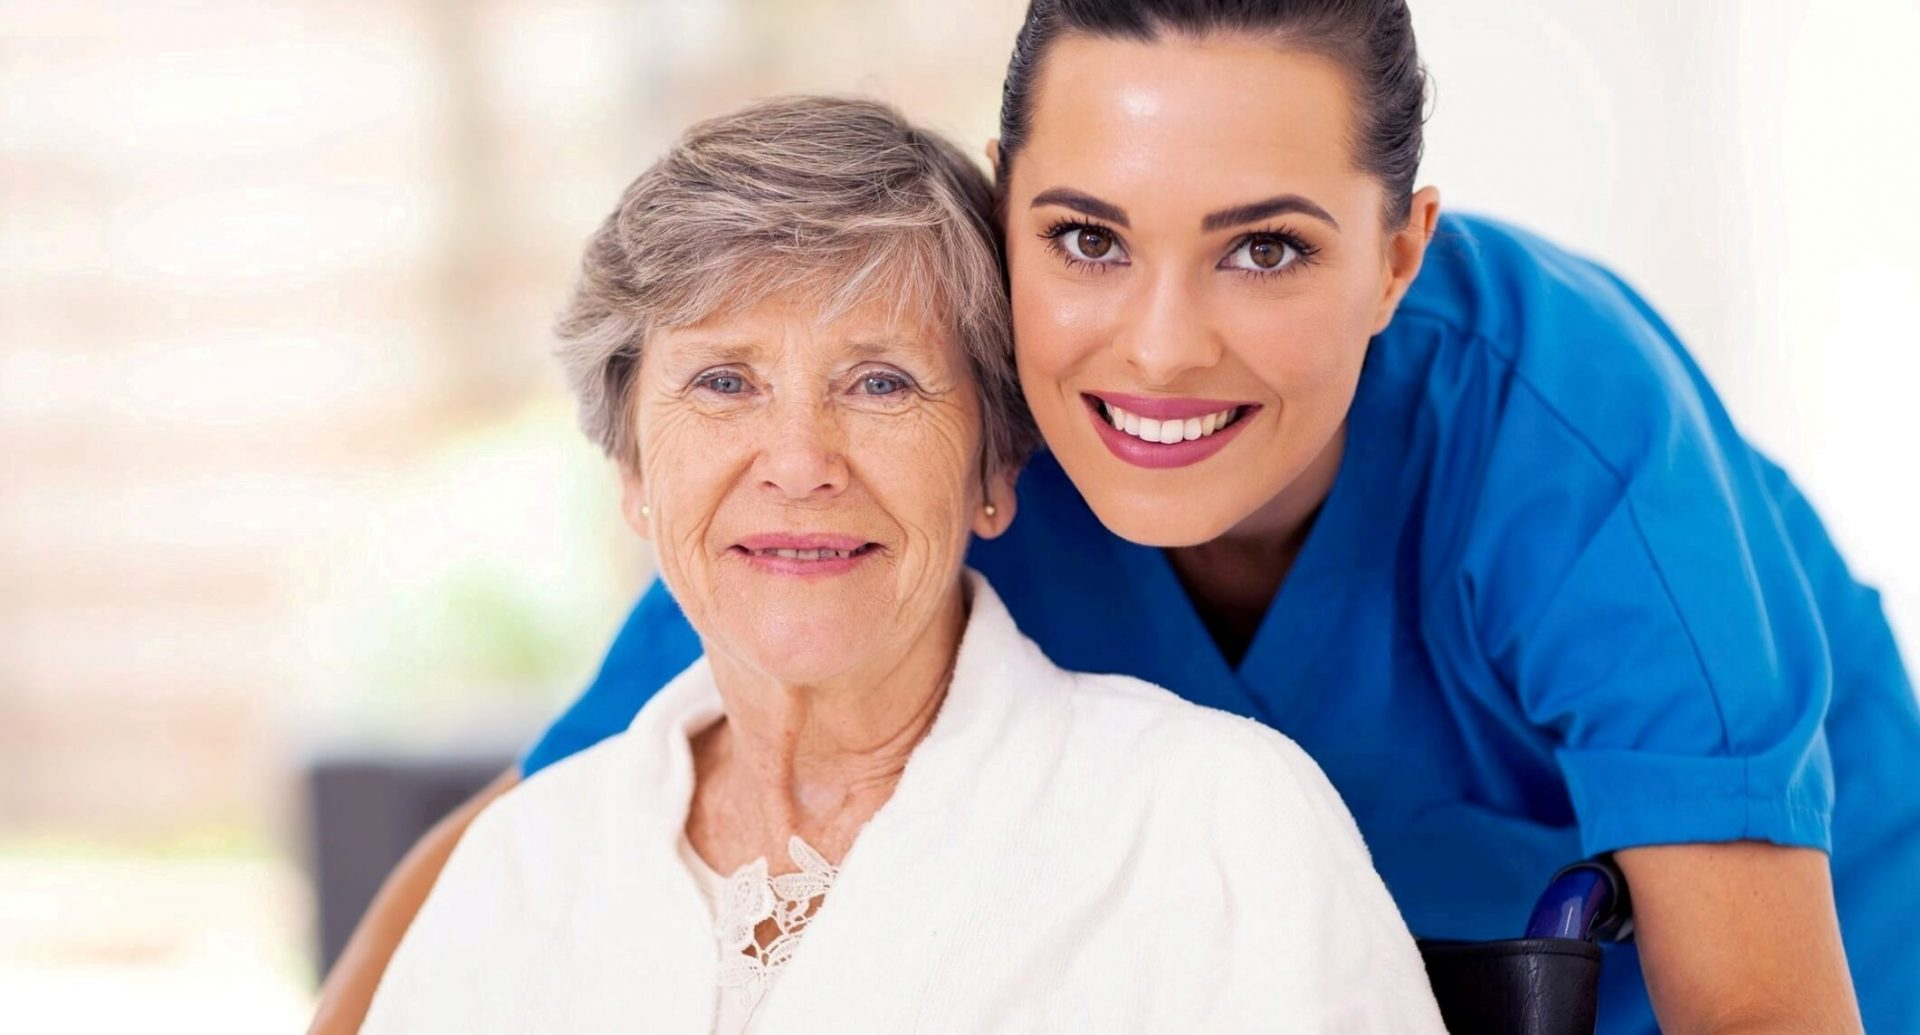 All Heart Home Care San Diego CA Senior In-Home Care Assistance